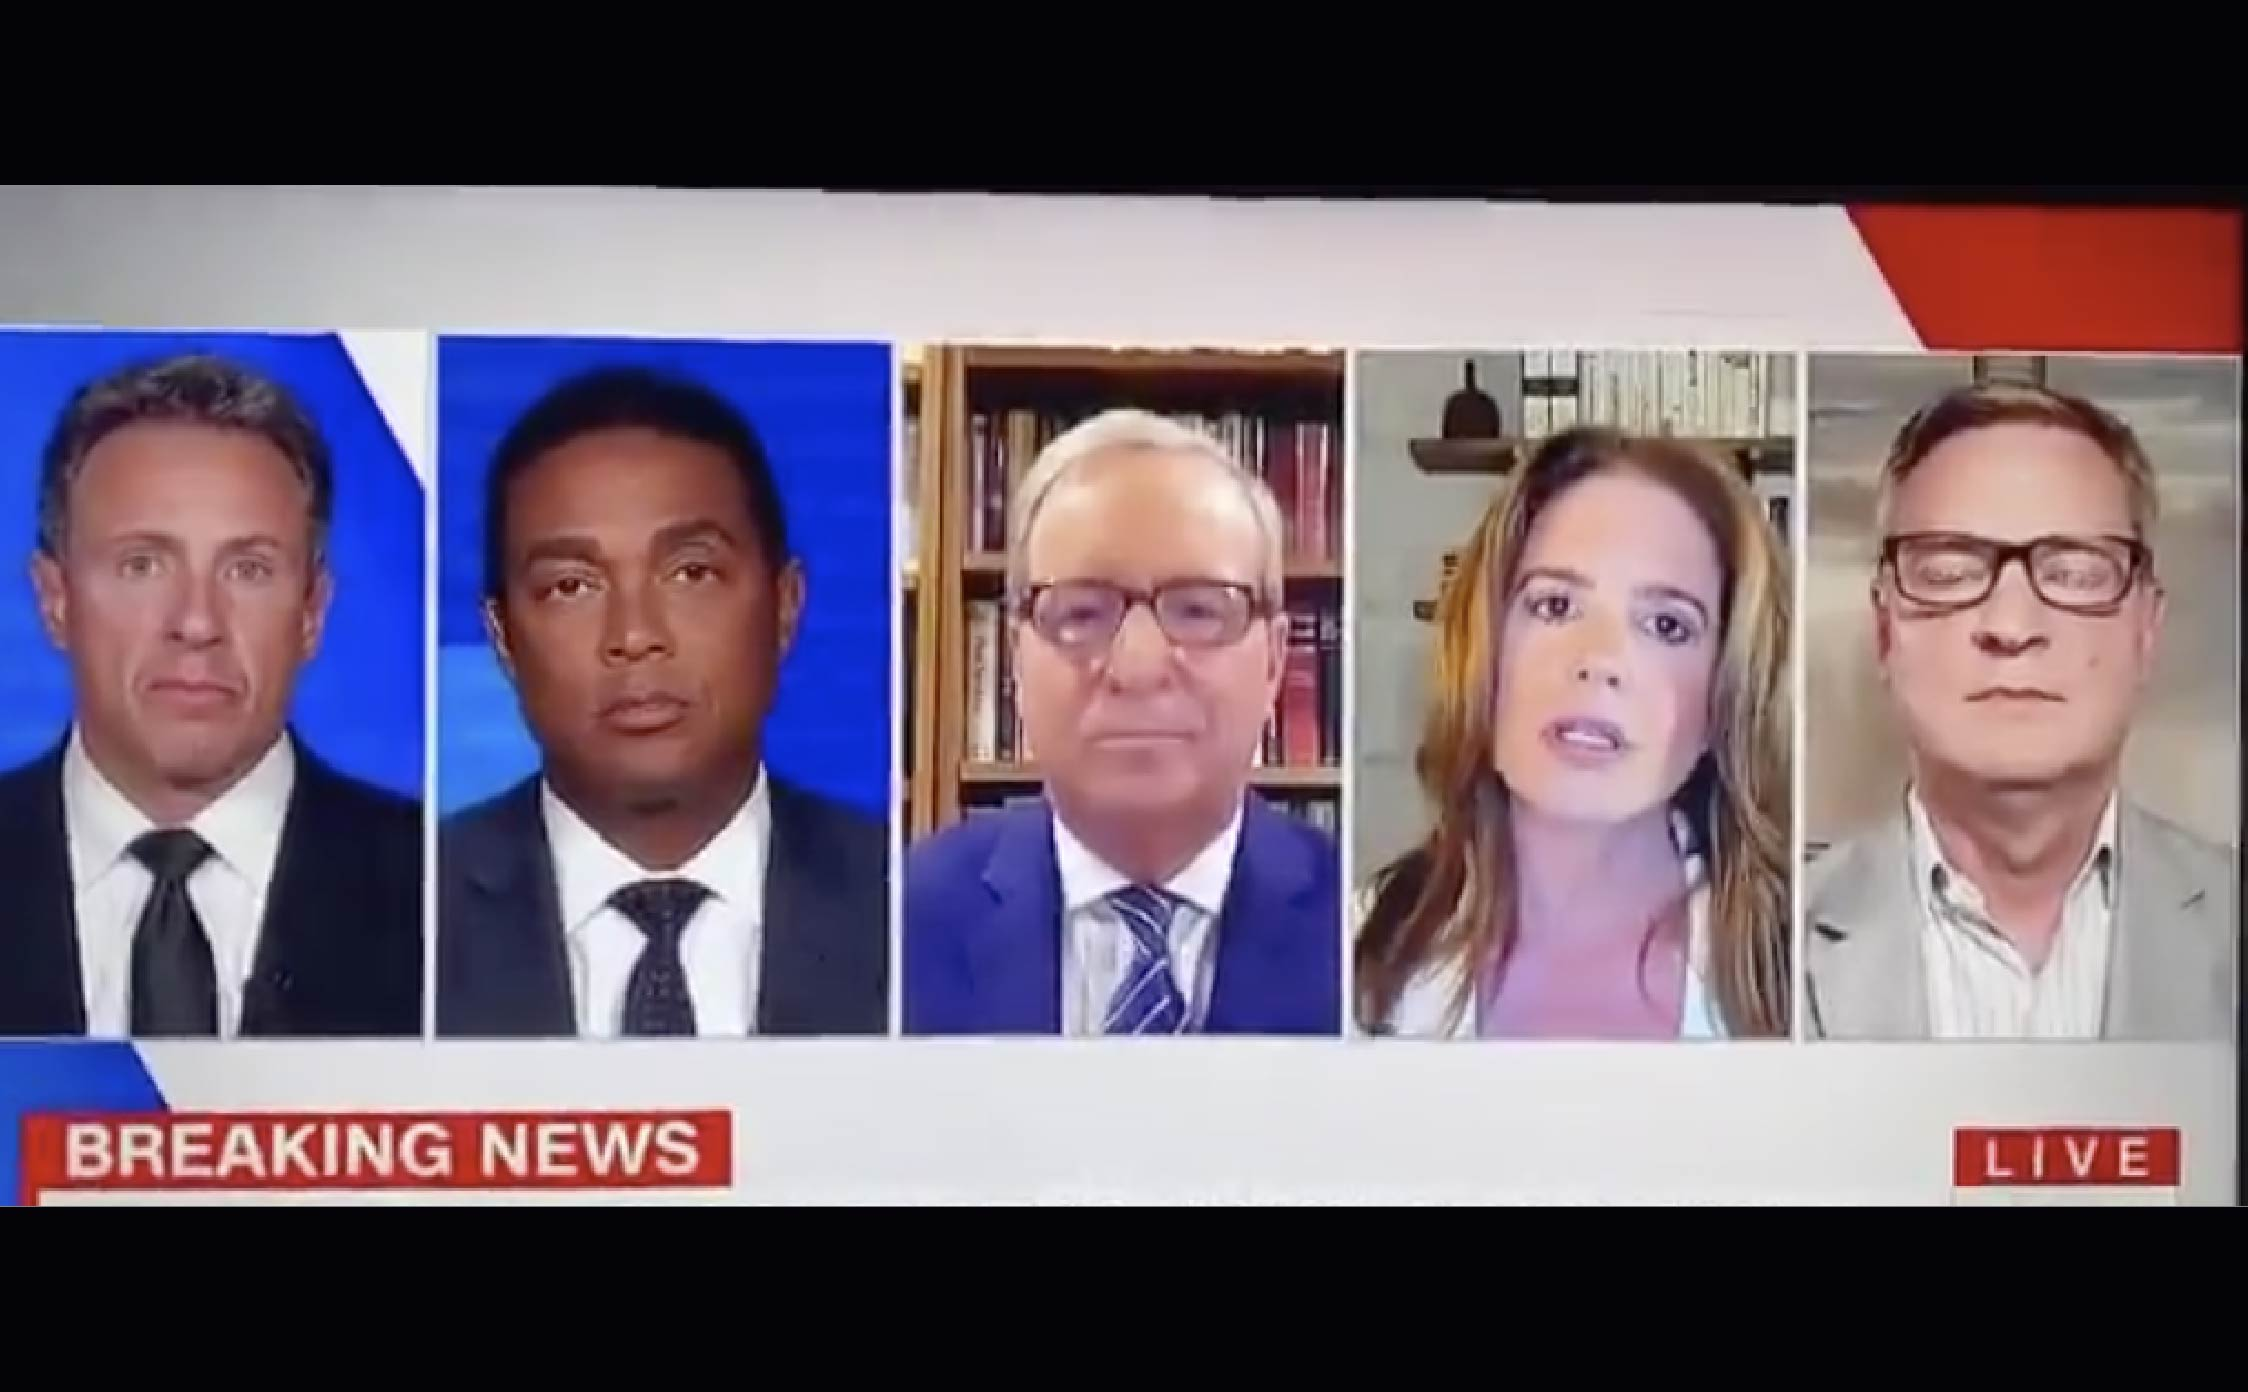 """[VIDEO] CNN Panel Says There's """"Very Little Rioting"""" and Trump is Blowing it Out of Proportion to Scare People"""